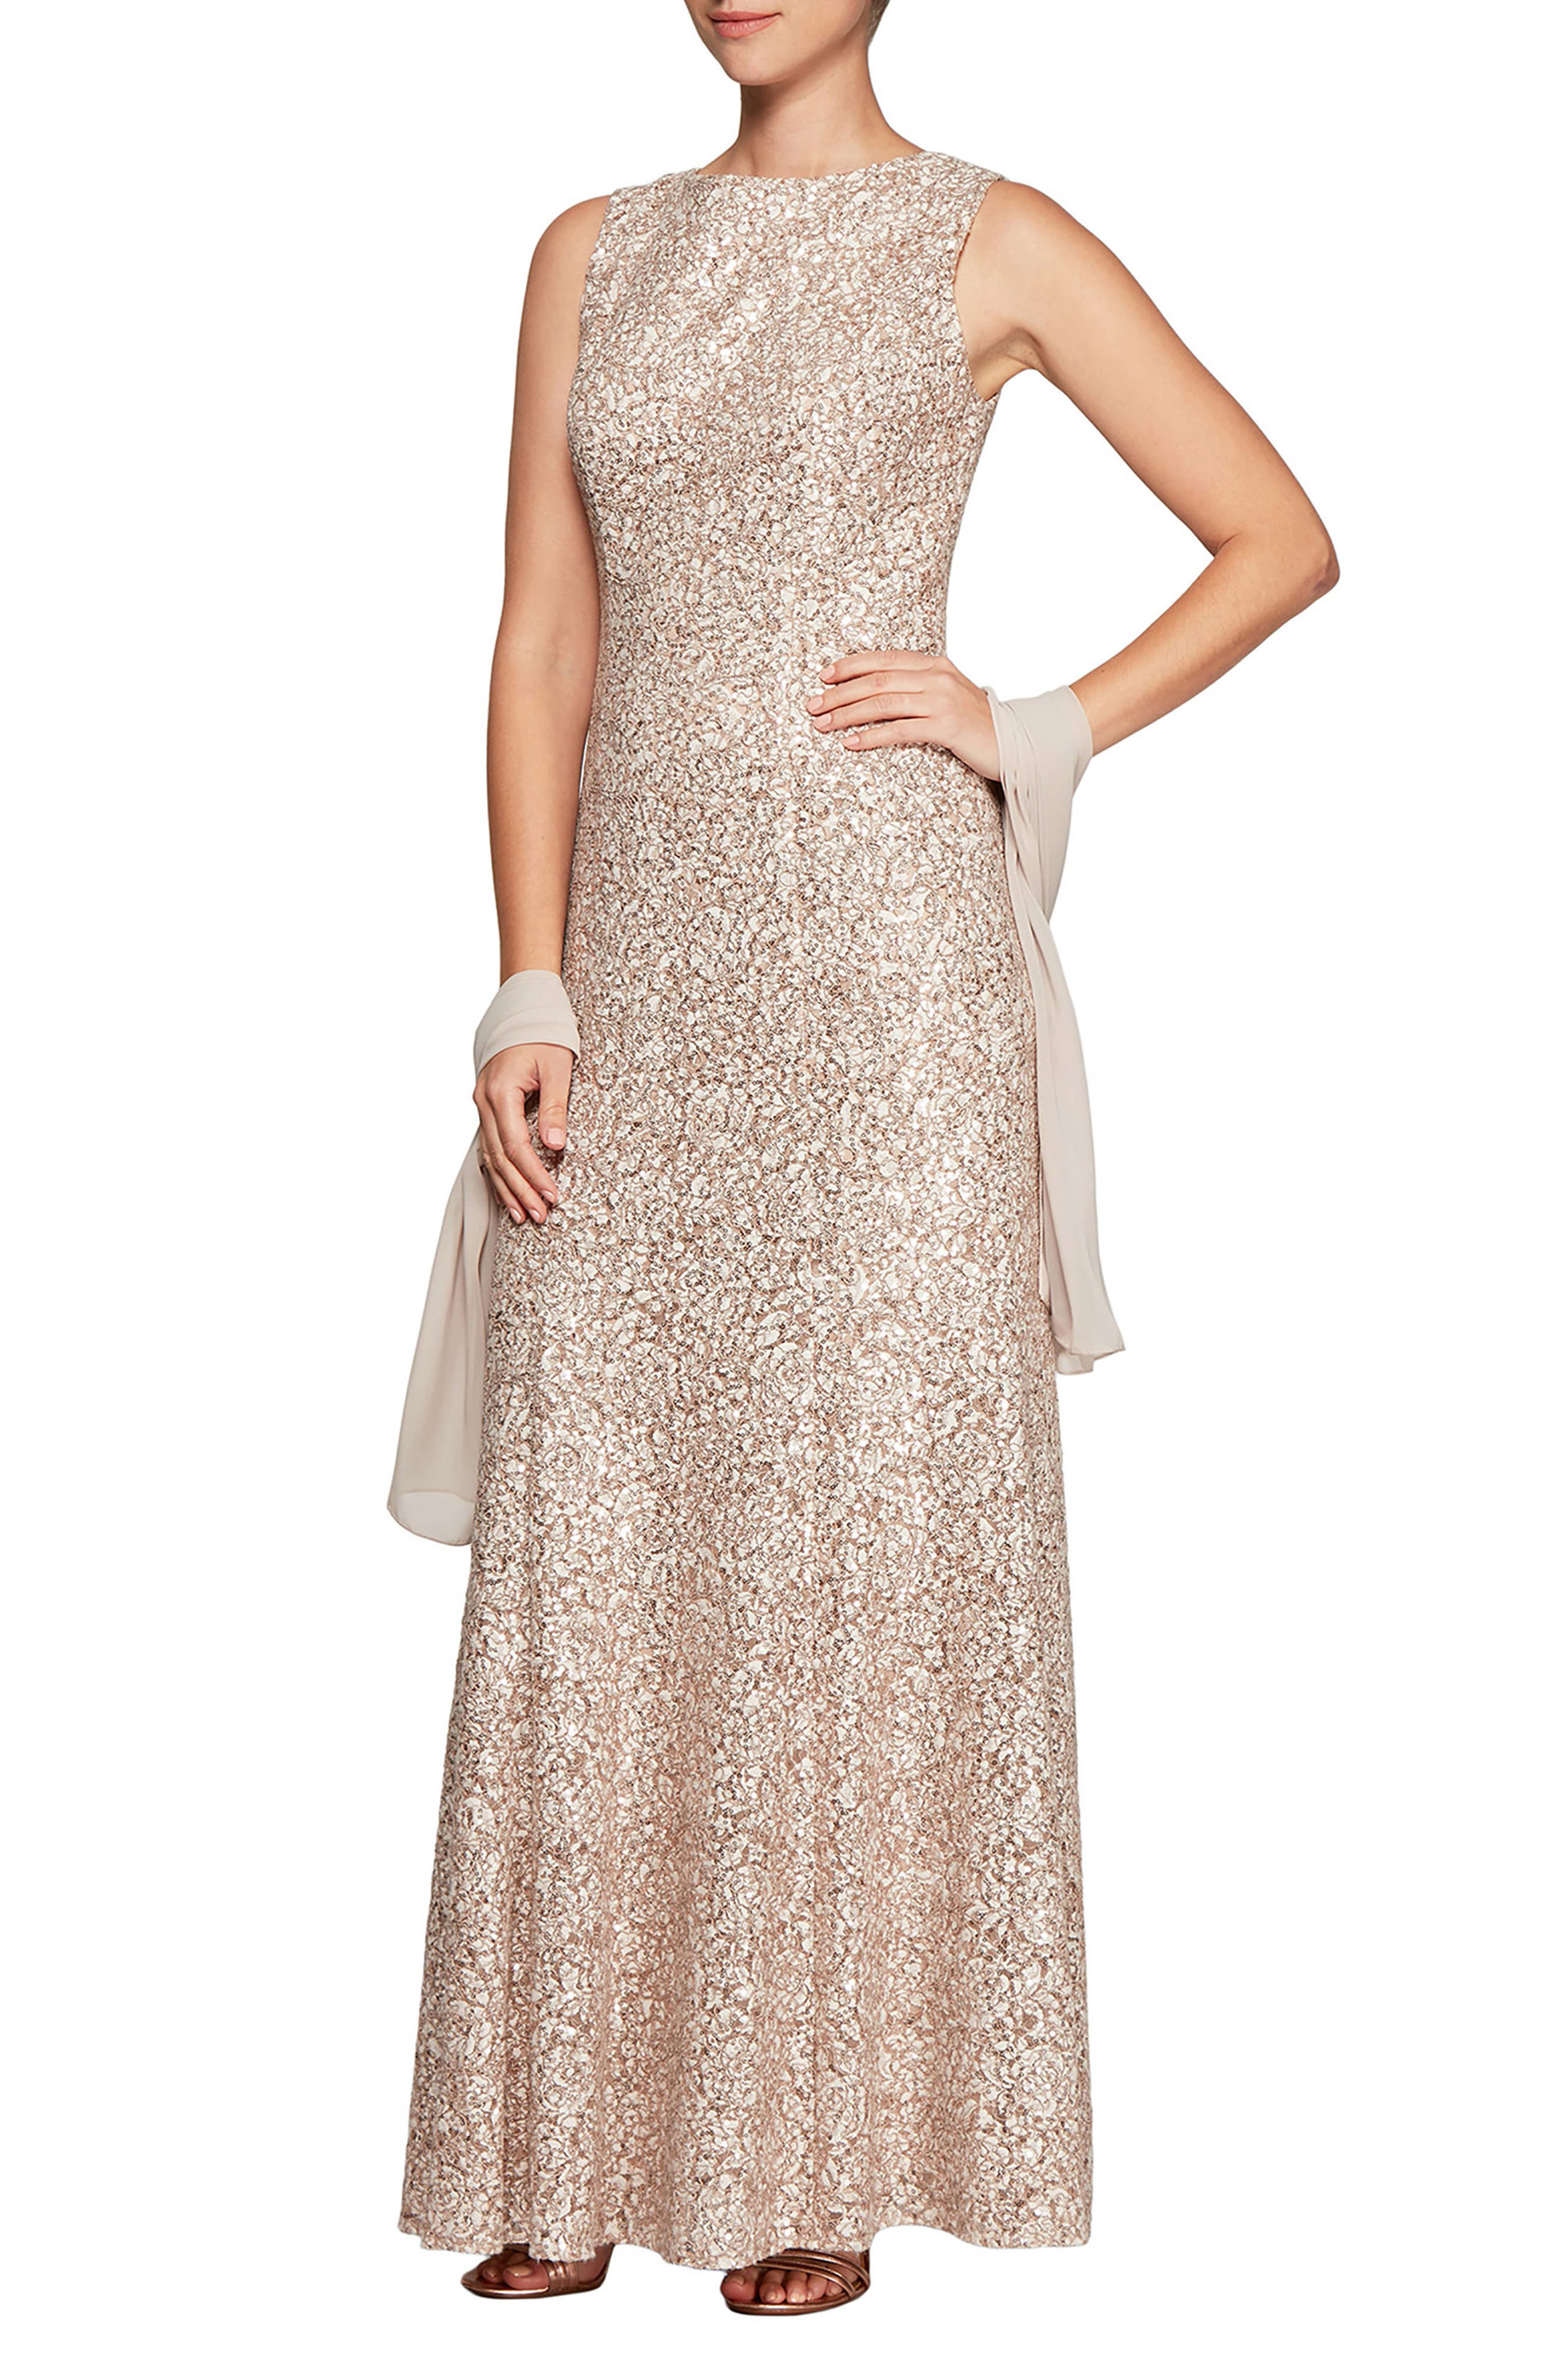 Sequined lace follows the fitted bodice and curve-skimming silhouette of this elegant trumpet gown paired with a filmy shawl for an event-worthy look. Style Name: Alex Evenings Sequin Trumpet Gown With Shawl. Style Number: 6009589. Available in stores.